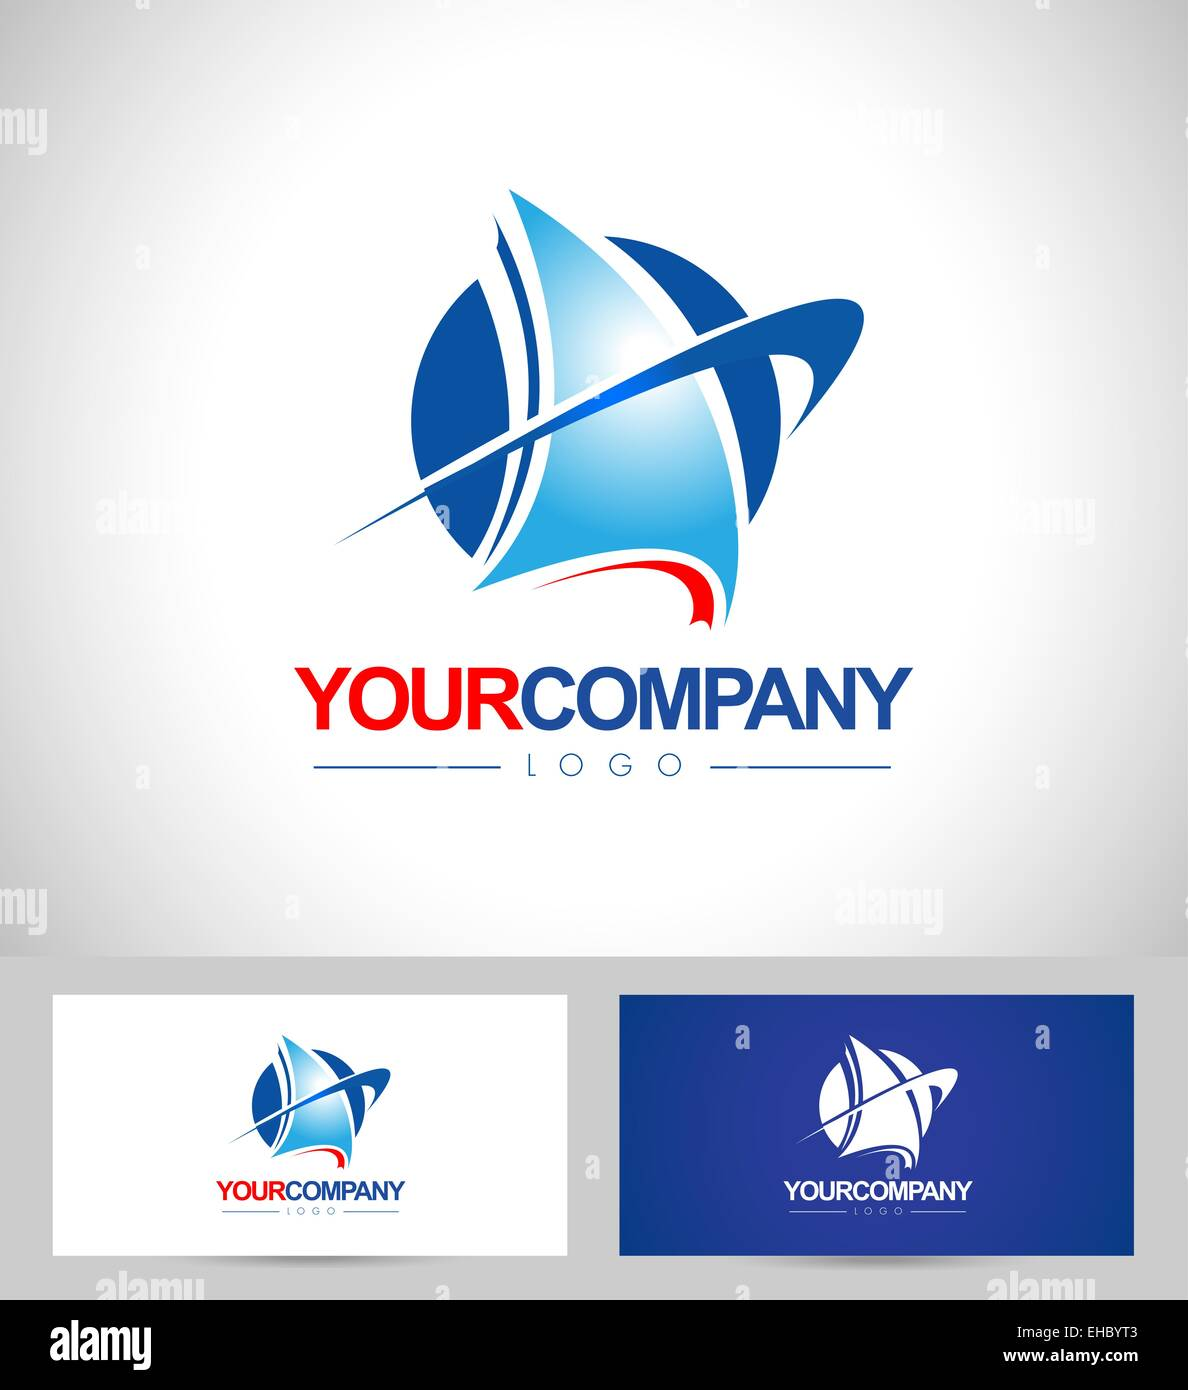 yacht boat logo design vector creative logo design of a boat with